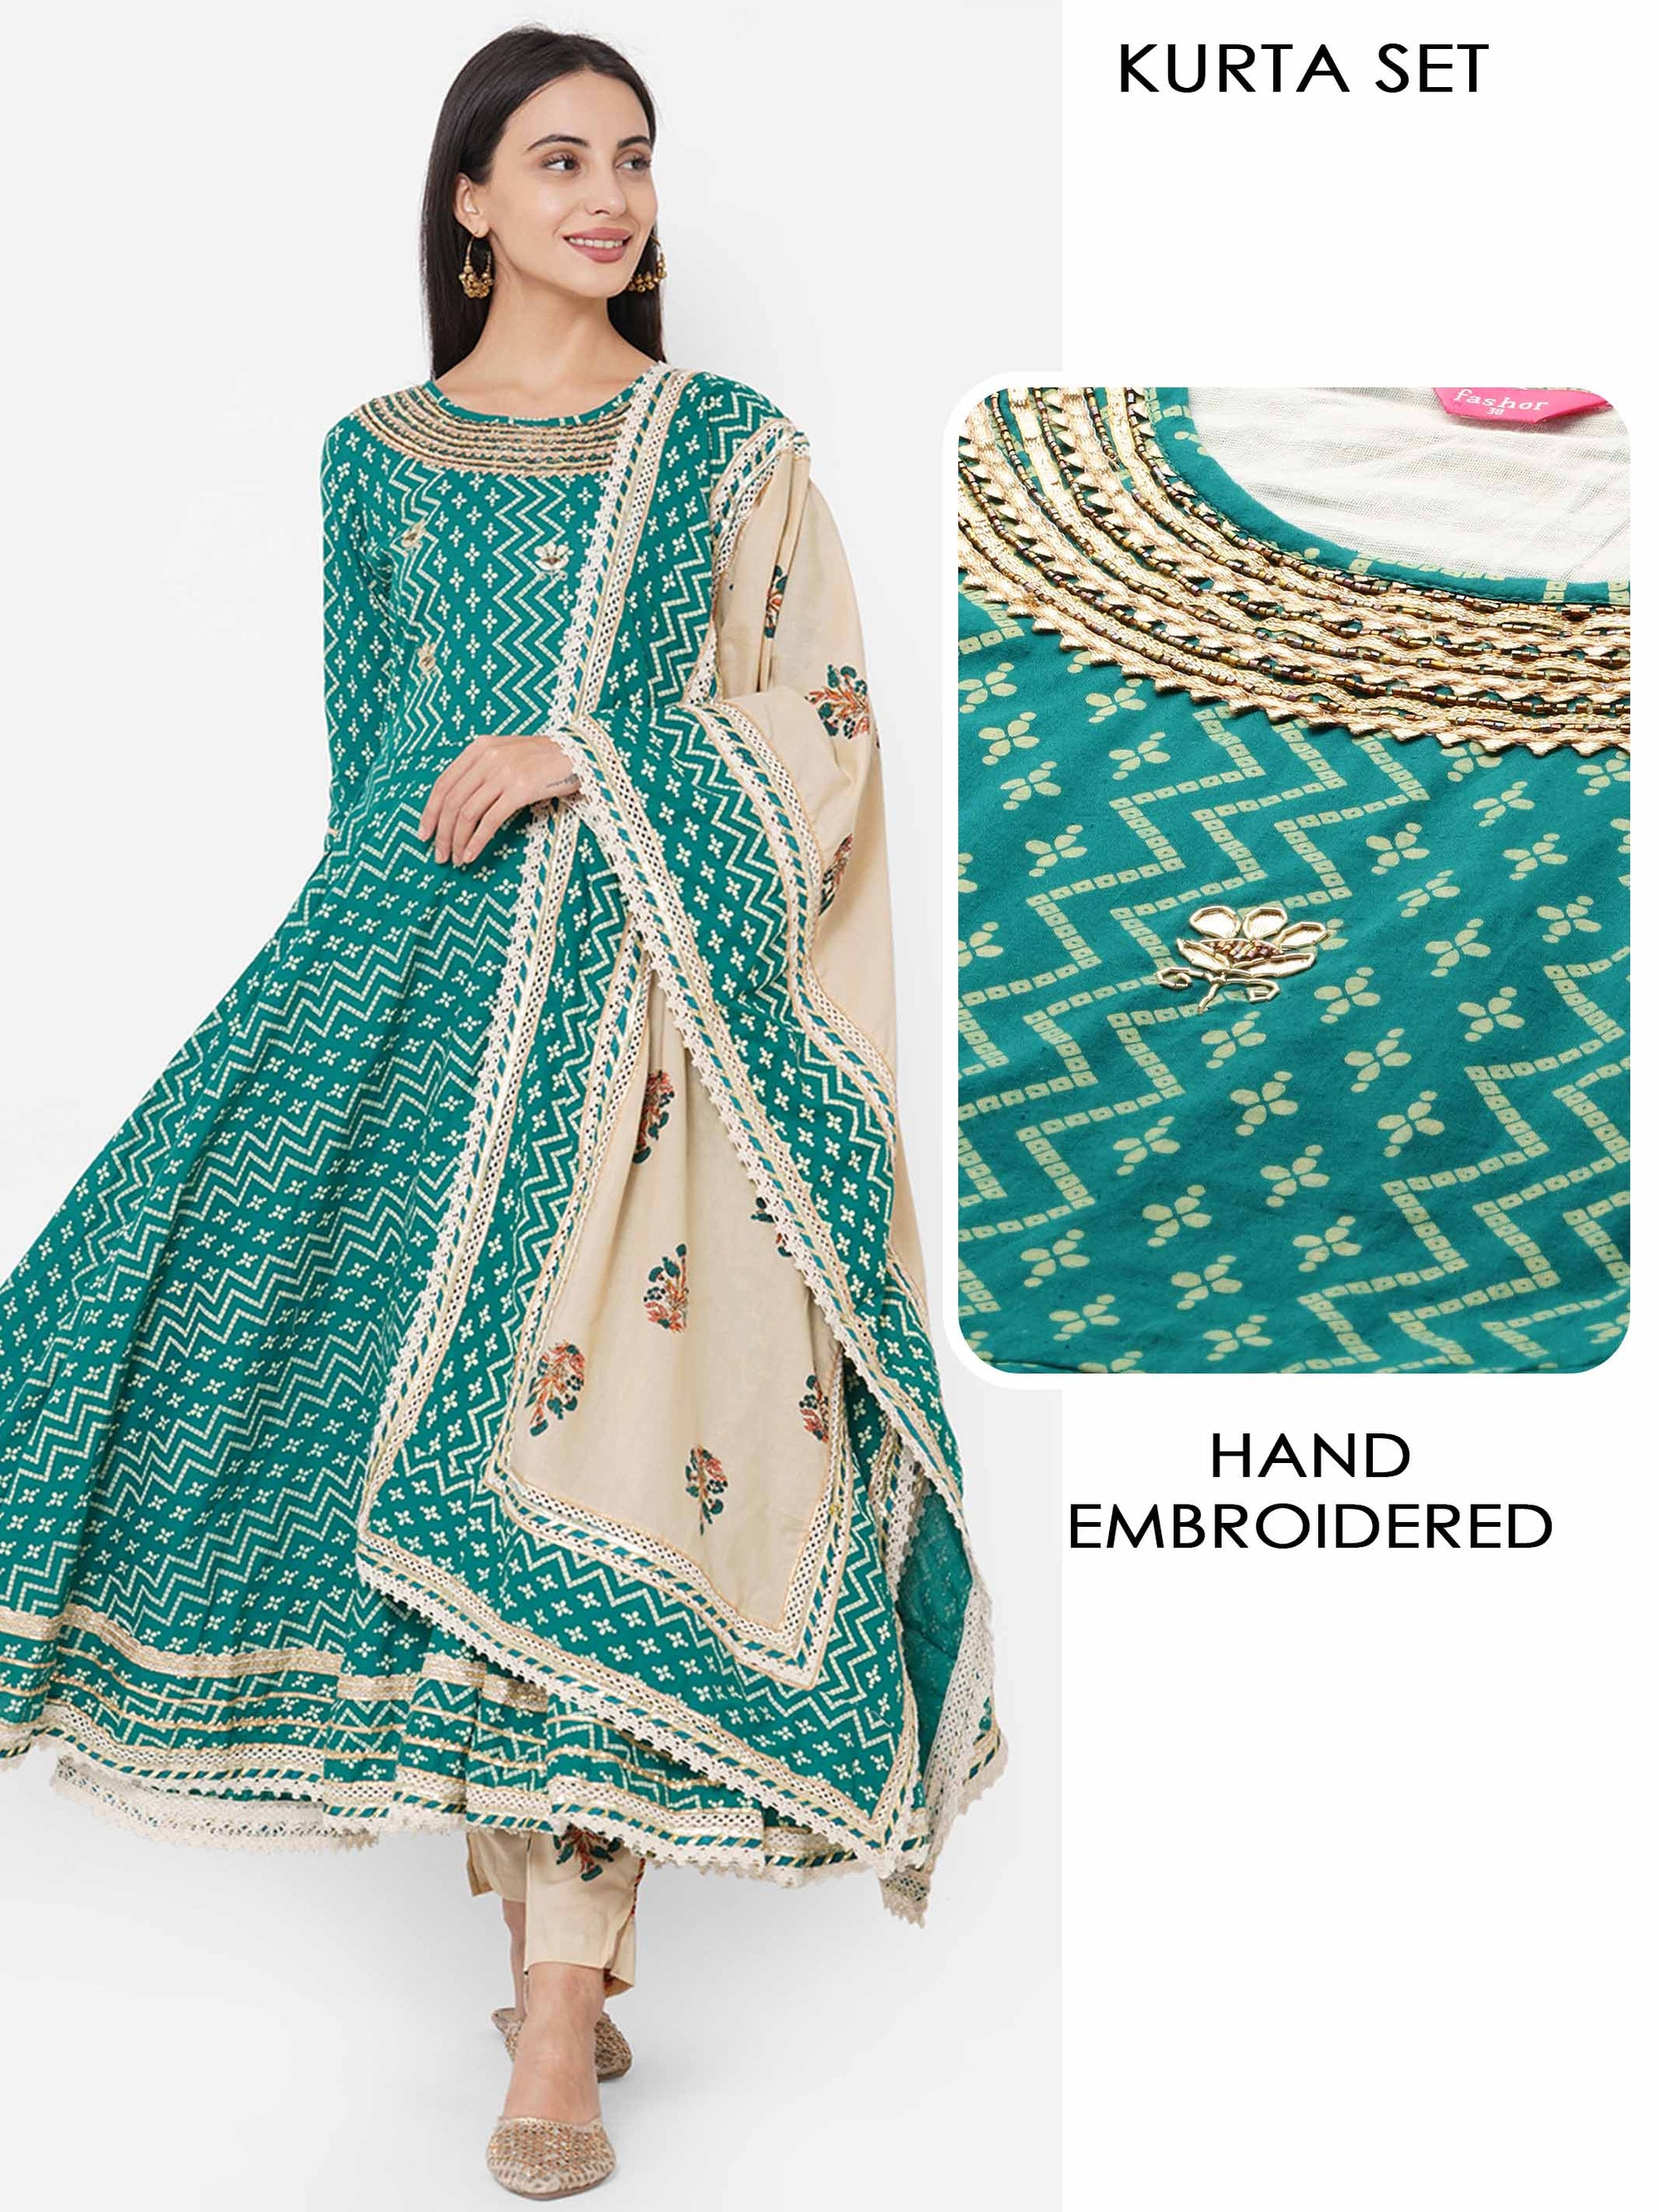 Bandhani Printed & Hand Embroidered Kurta with Bagru Block Printed Pant & Dupatta - Green